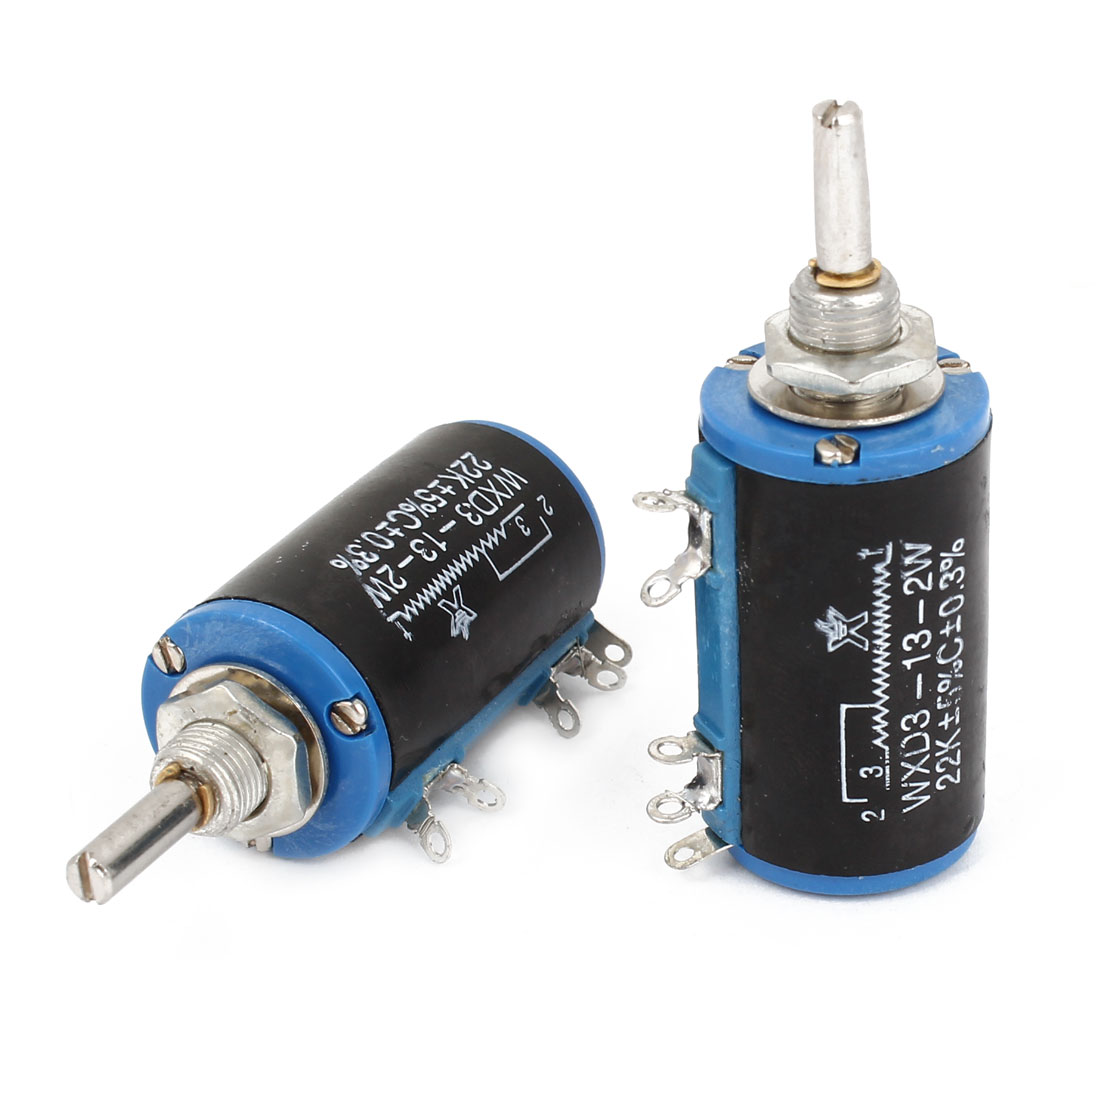 WXD3-13 22K ohm 2W 4mm Shaft 10 Turn Rotary Wire Wound Potentiometer 2pcs